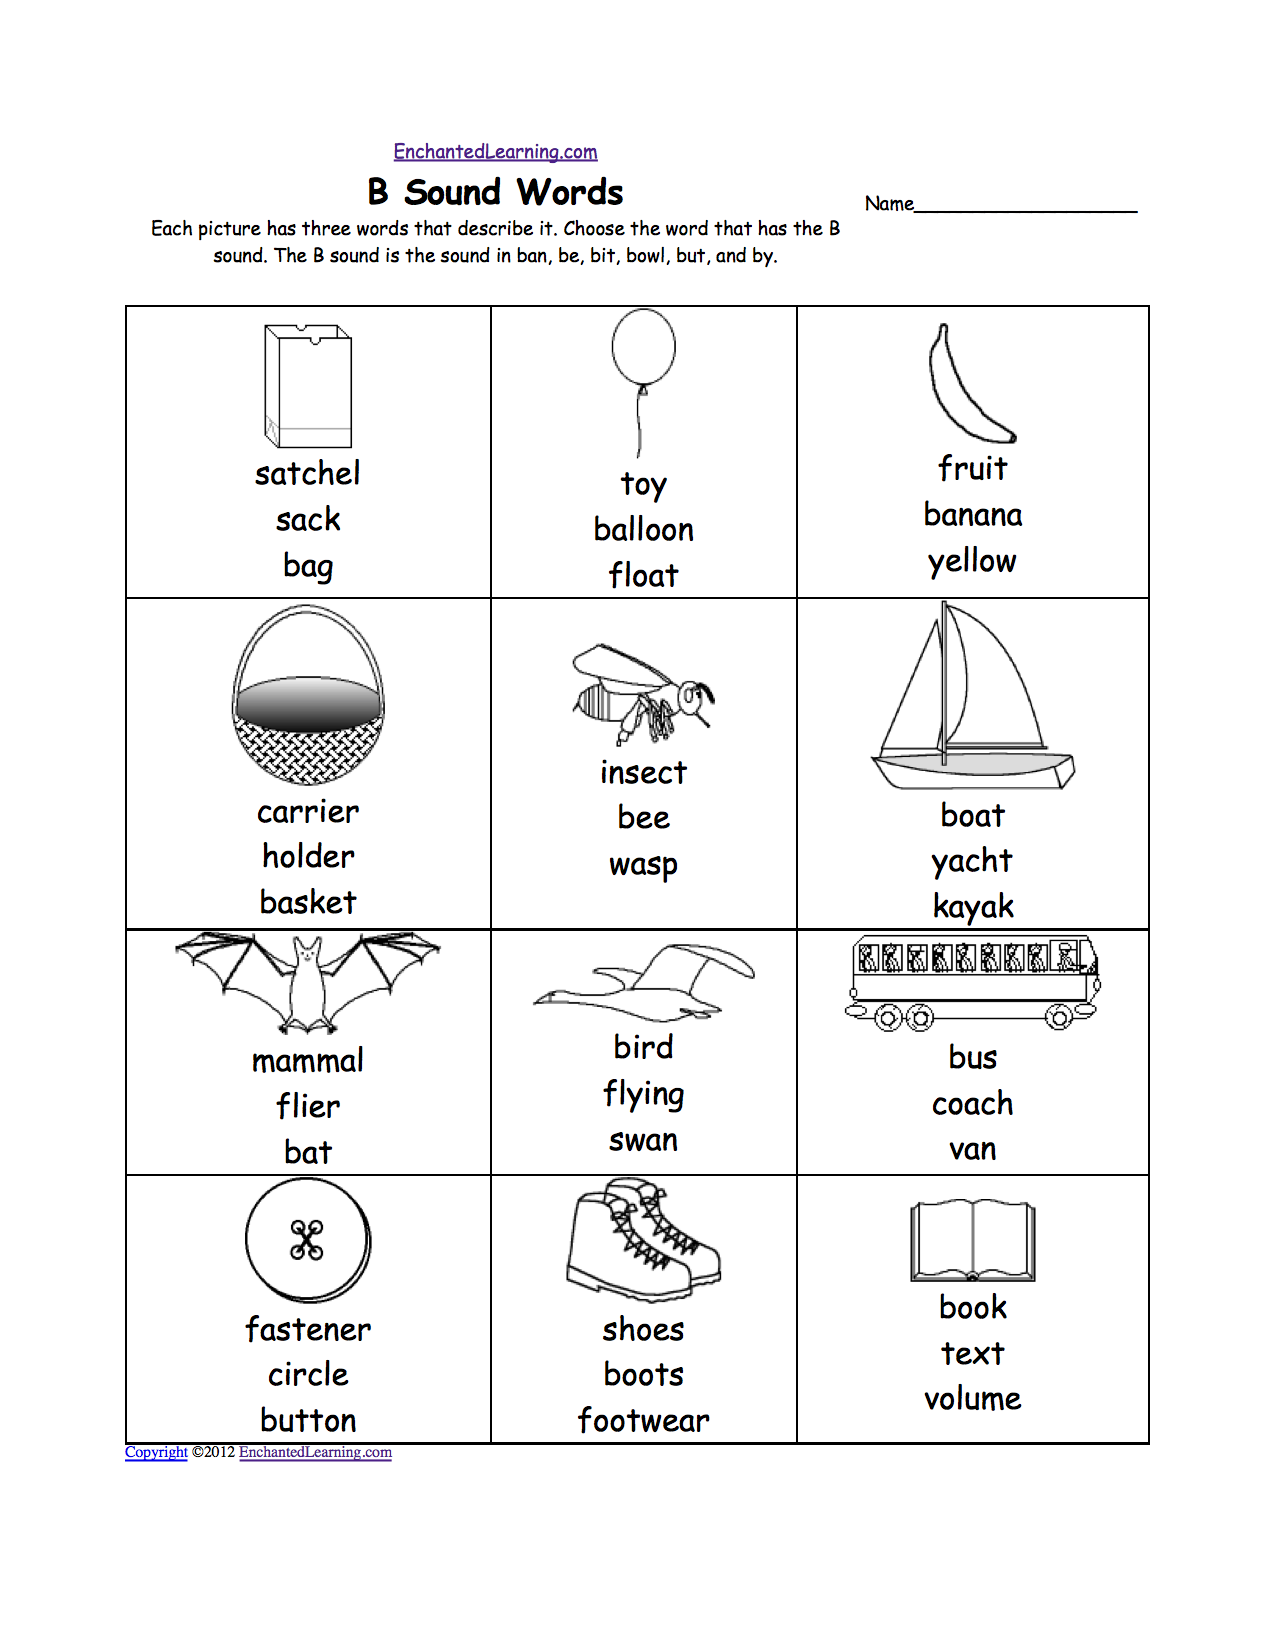 Proatmealus  Pleasing Phonics Worksheets Multiple Choice Worksheets To Print  With Glamorous Quotbquot Sound Phonics Worksheet Multiple Choice Each Picture Has Three Words That Describe It Choose The Word That Has A Quotbquot Sound The Quotbquot Sound Is The Sound  With Nice Active Worksheet Vba Also Name Writing Worksheets In Addition Algebra  Factoring Worksheet And Crosscurricular Reading Comprehension Worksheets As Well As Dna Replication Coloring Worksheet Additionally Common Core Worksheets Th Grade From Enchantedlearningcom With Proatmealus  Glamorous Phonics Worksheets Multiple Choice Worksheets To Print  With Nice Quotbquot Sound Phonics Worksheet Multiple Choice Each Picture Has Three Words That Describe It Choose The Word That Has A Quotbquot Sound The Quotbquot Sound Is The Sound  And Pleasing Active Worksheet Vba Also Name Writing Worksheets In Addition Algebra  Factoring Worksheet From Enchantedlearningcom